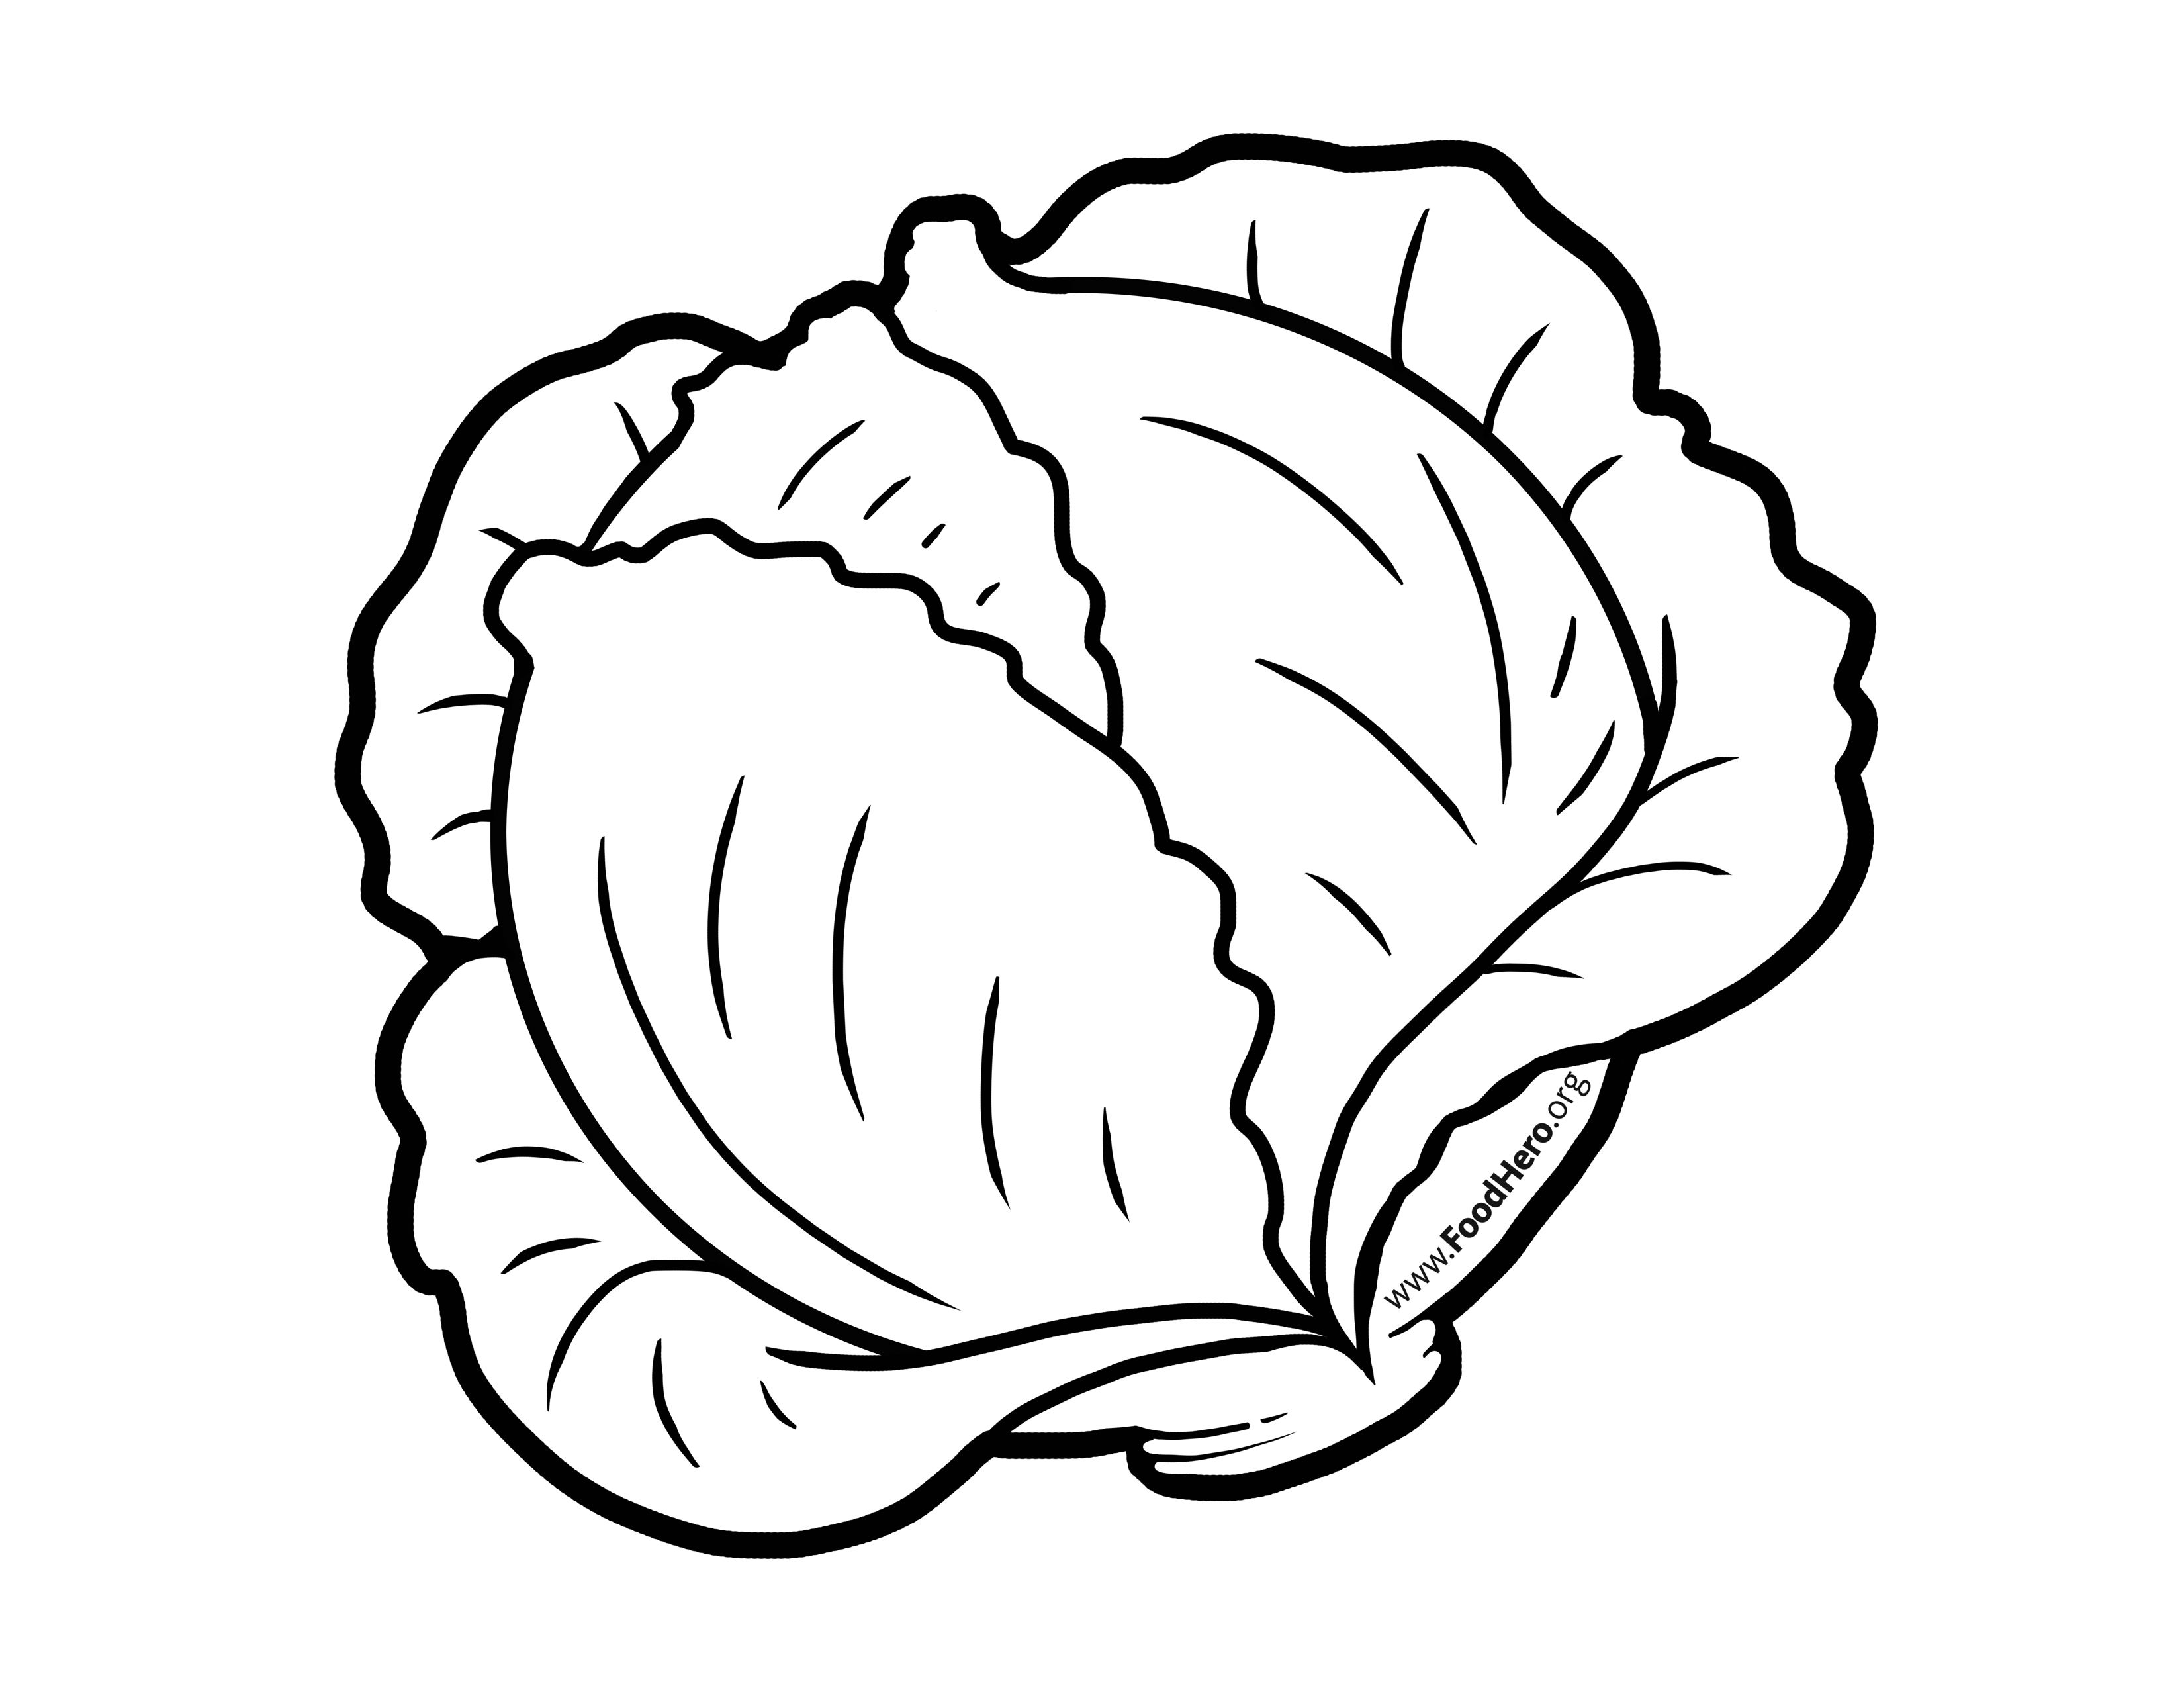 Drawing free download best. Cabbage clipart black and white